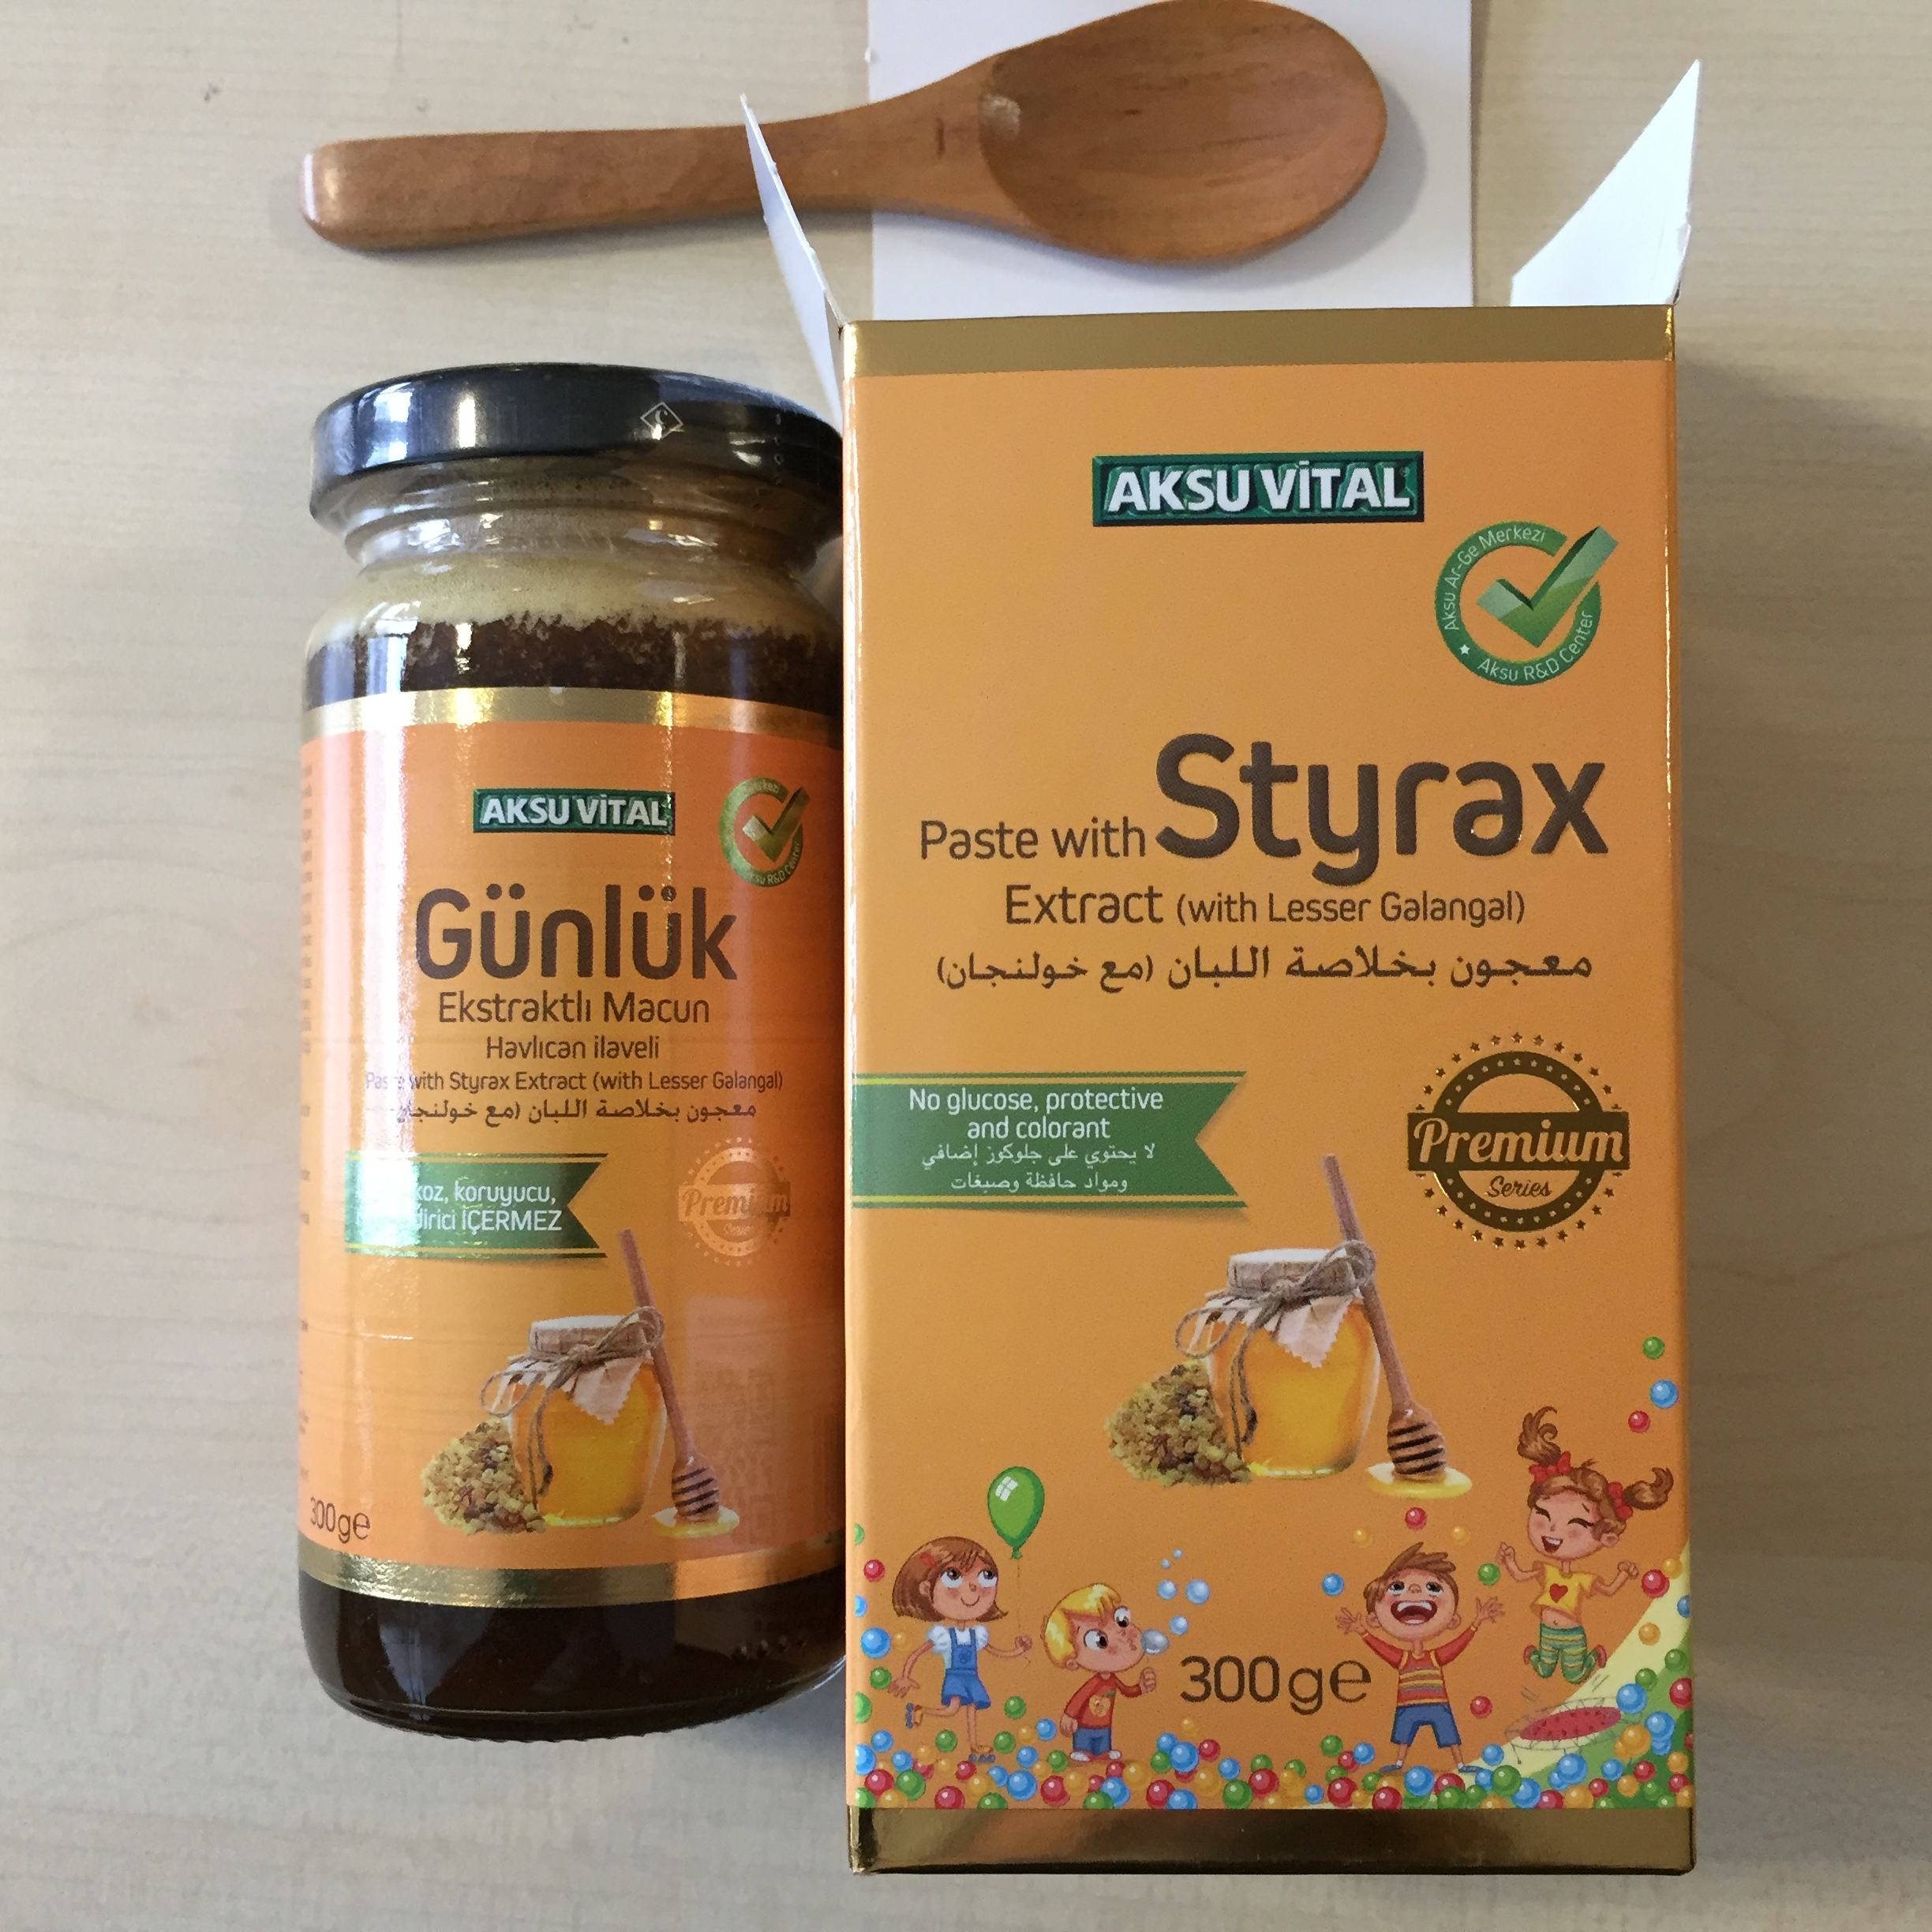 Styrax Extract Met Mindere Laos Halal Babyvoeding Producten Kids Dosis Royal Jelly Pollen Honing Mengsel Optimale Voeding